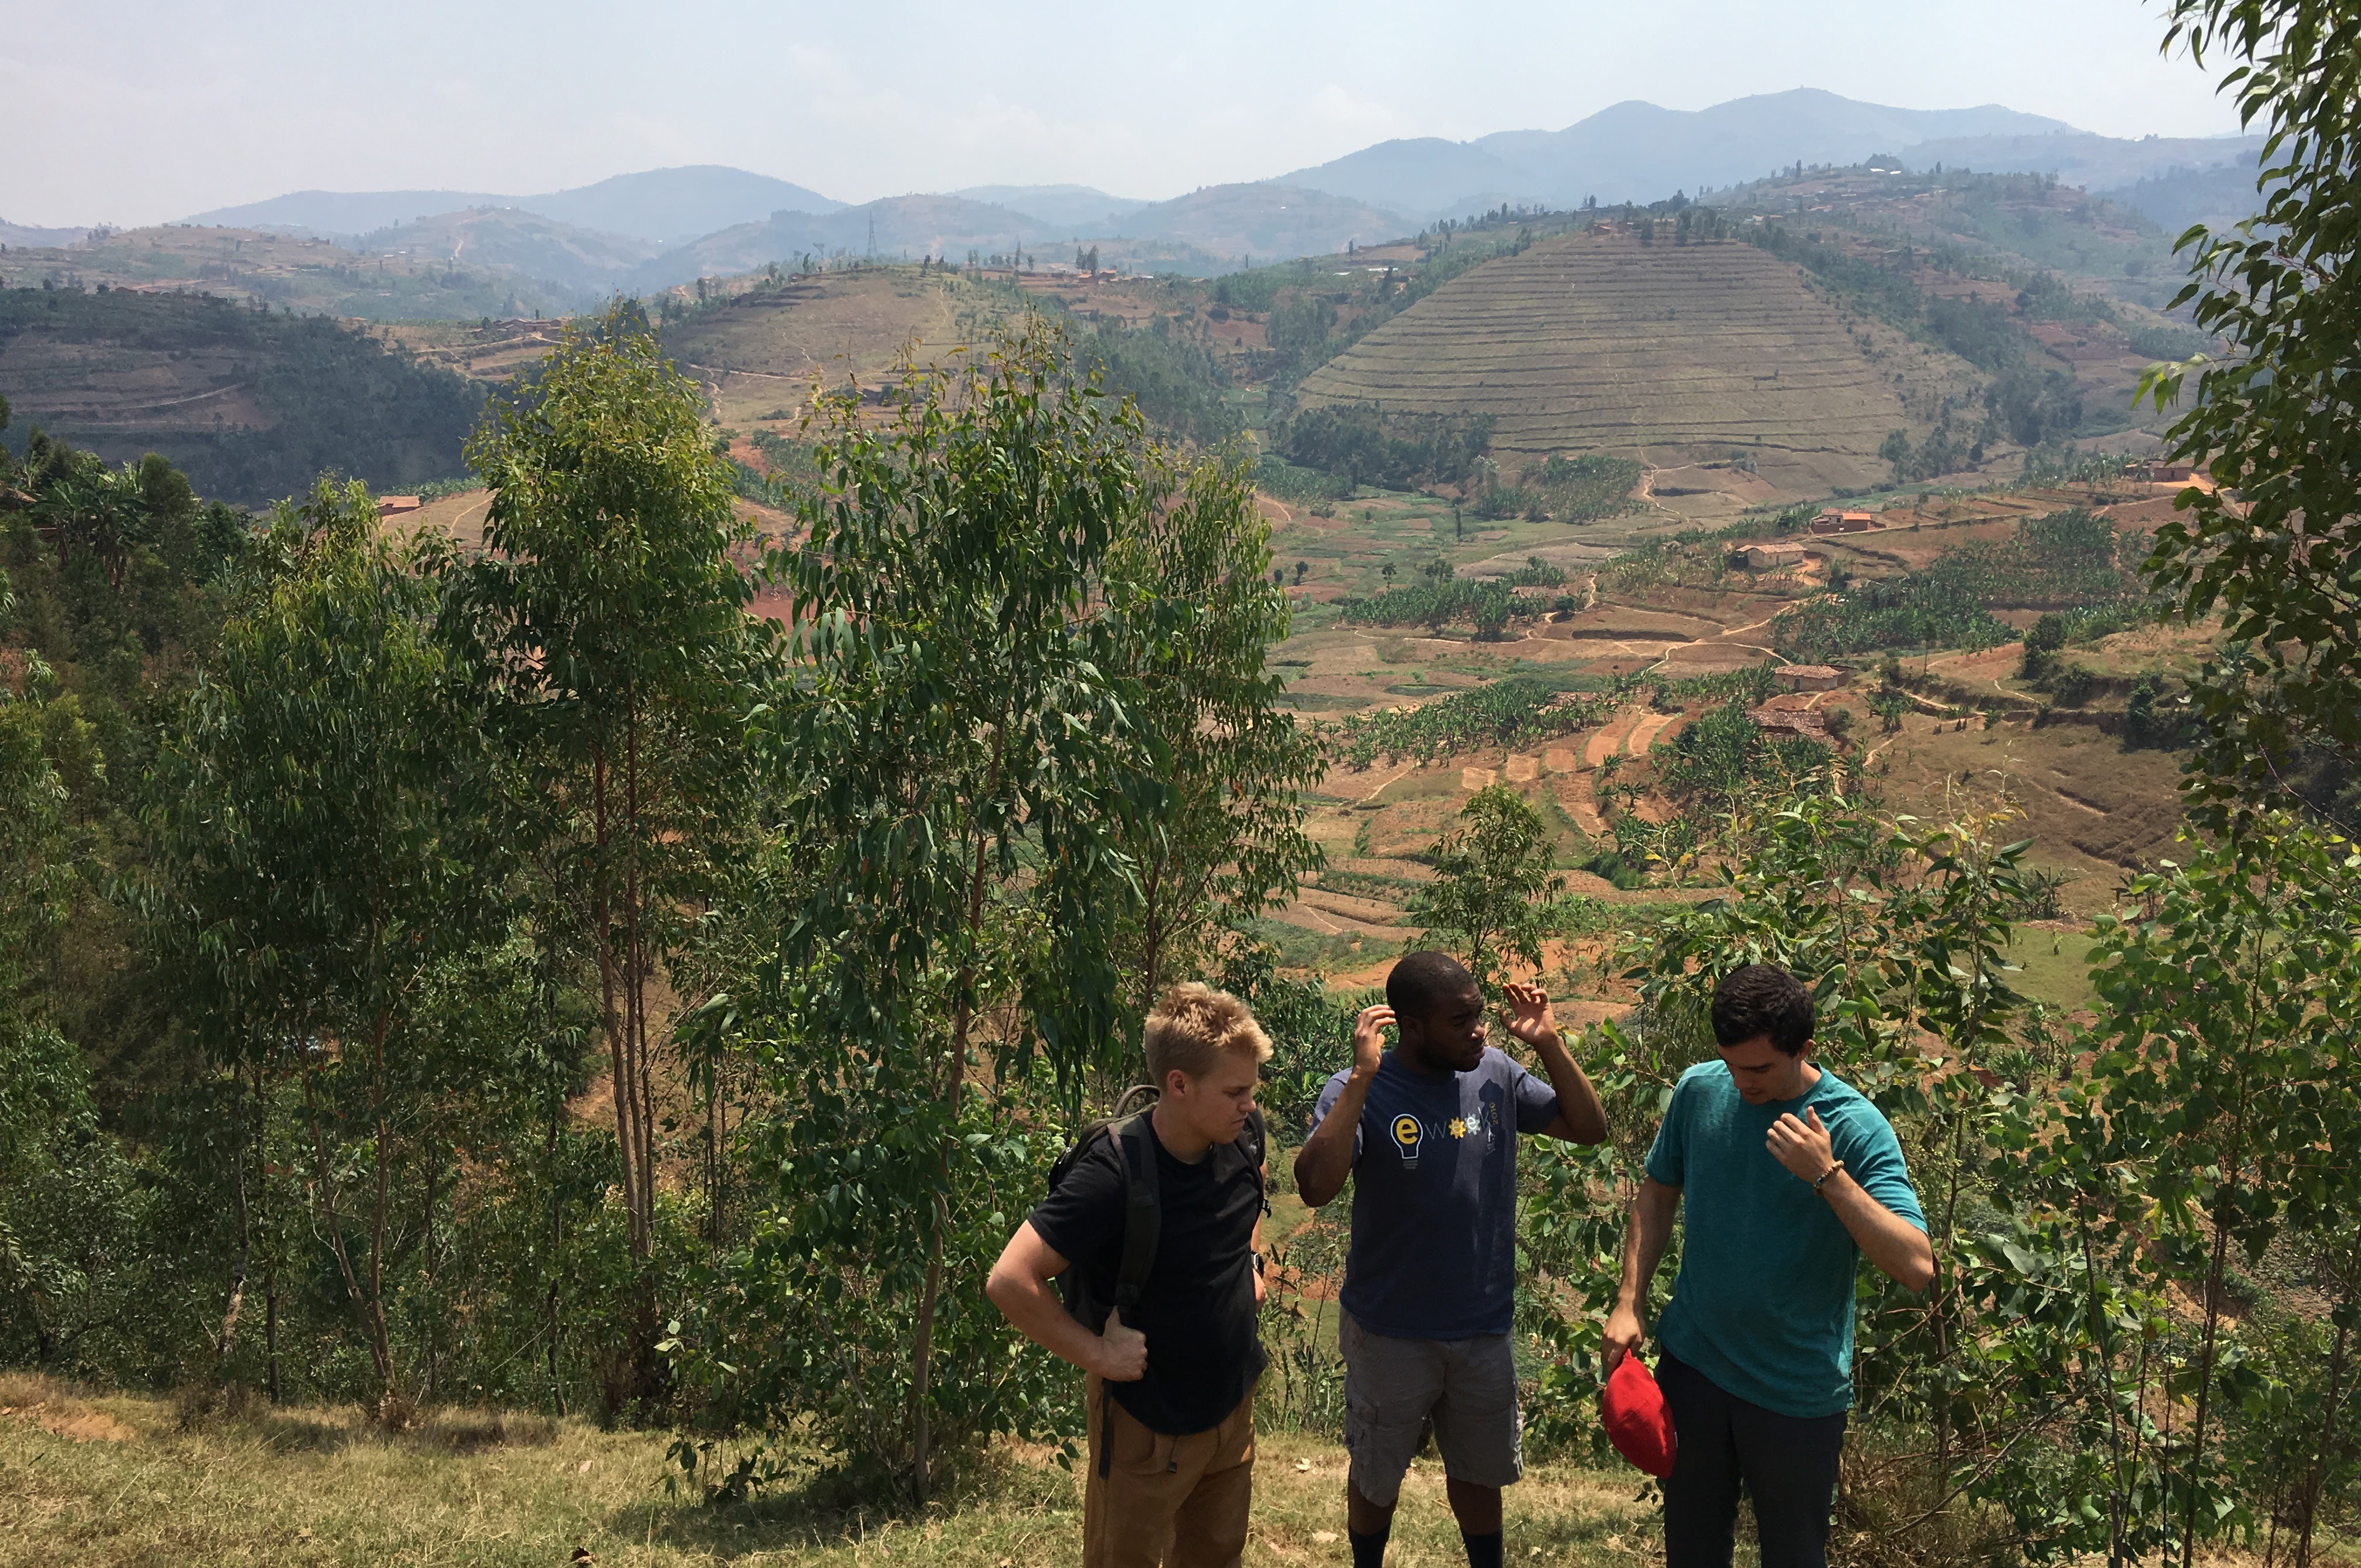 Ben, Uche, and Jon study the terrain for the future clay transport system